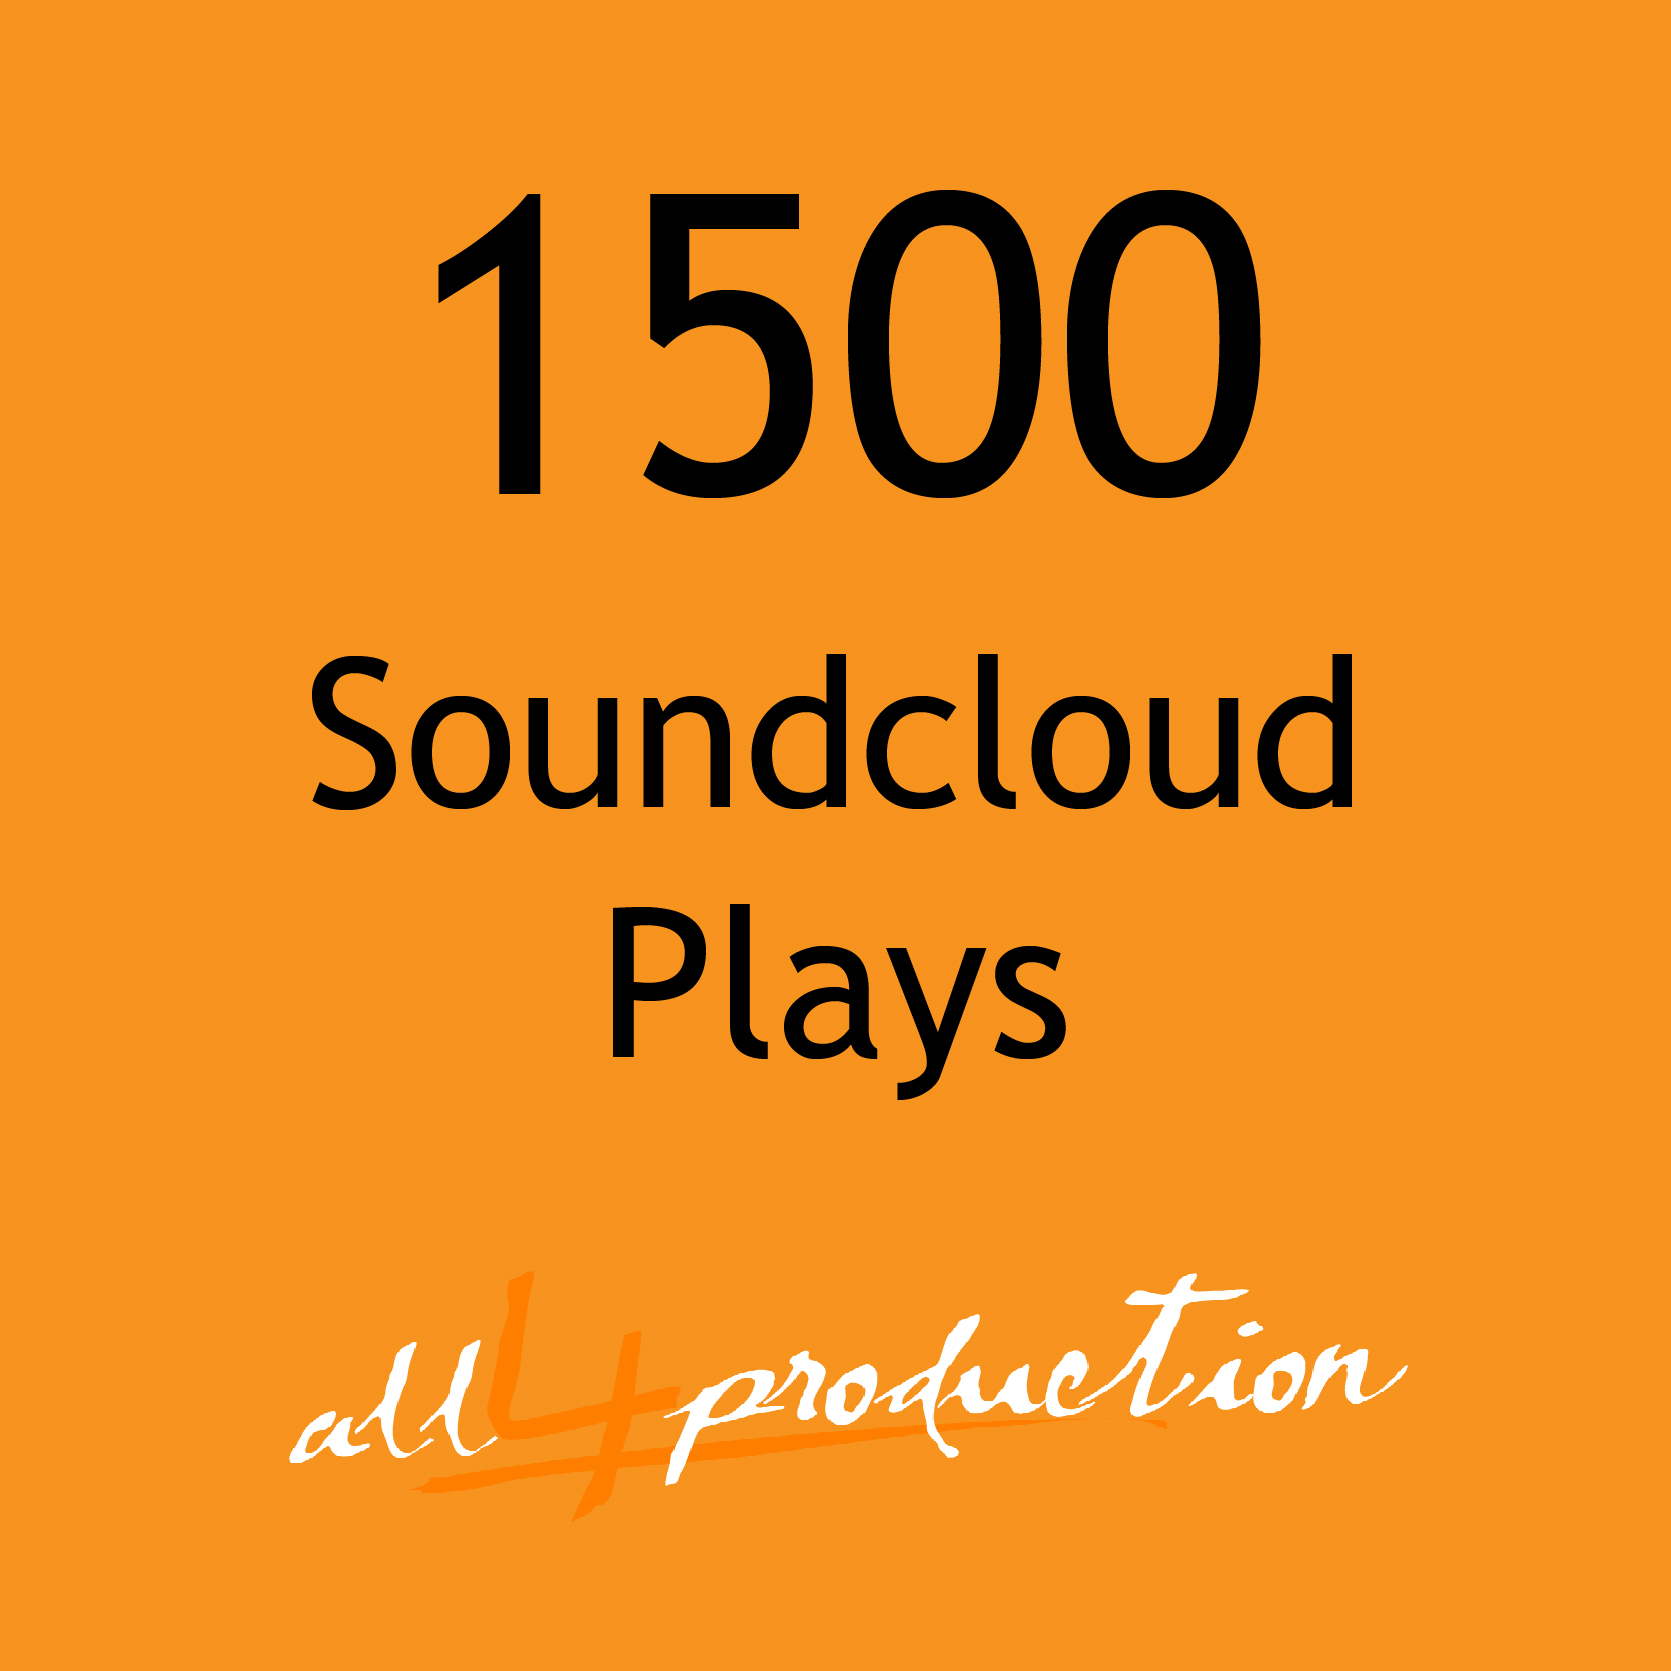 We will give you 1500 Soundcloud Plays in just 24 Hours Max Split on 4 Tracks MEGA EXPRESS SERVICE